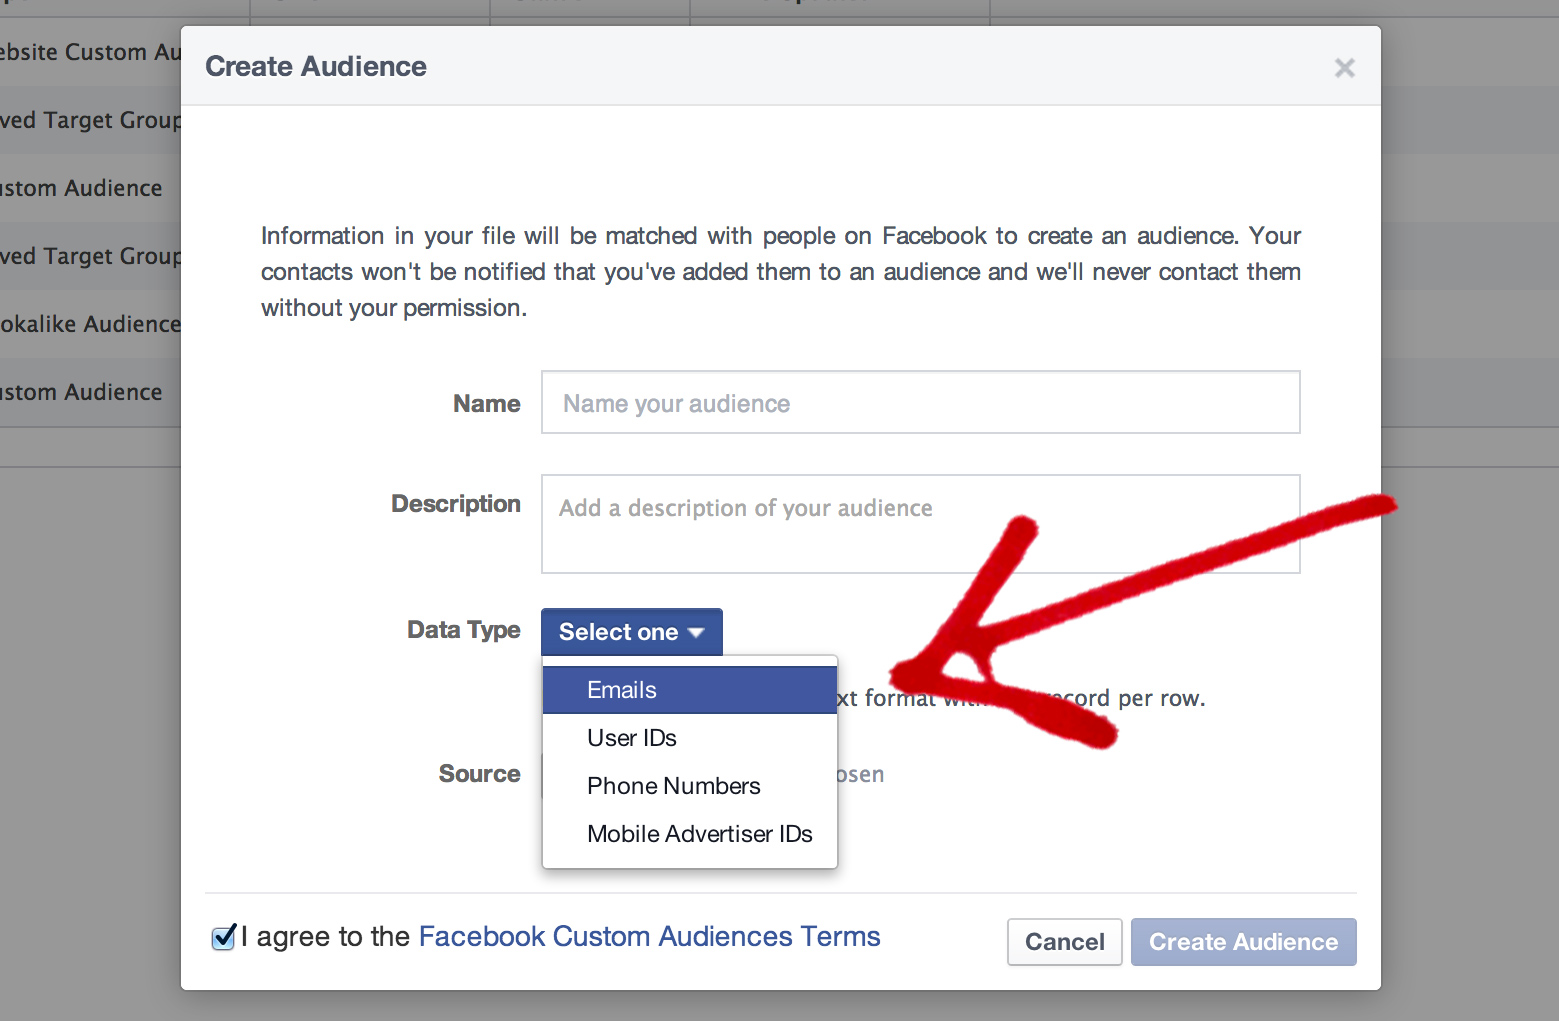 Configure your email custom audience